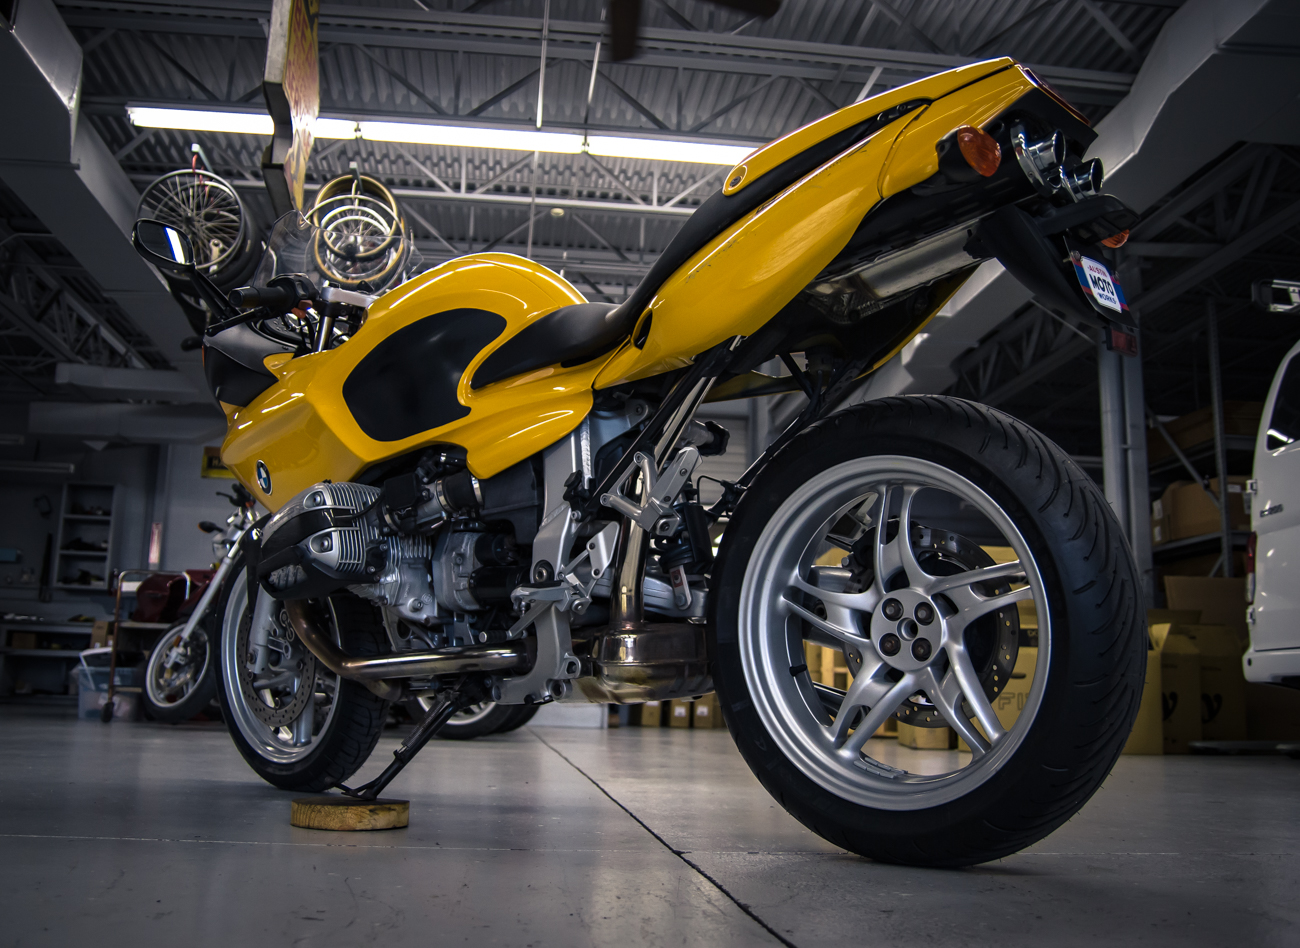 Yellow R1100s BMW for sale photos atx moto-10.jpg